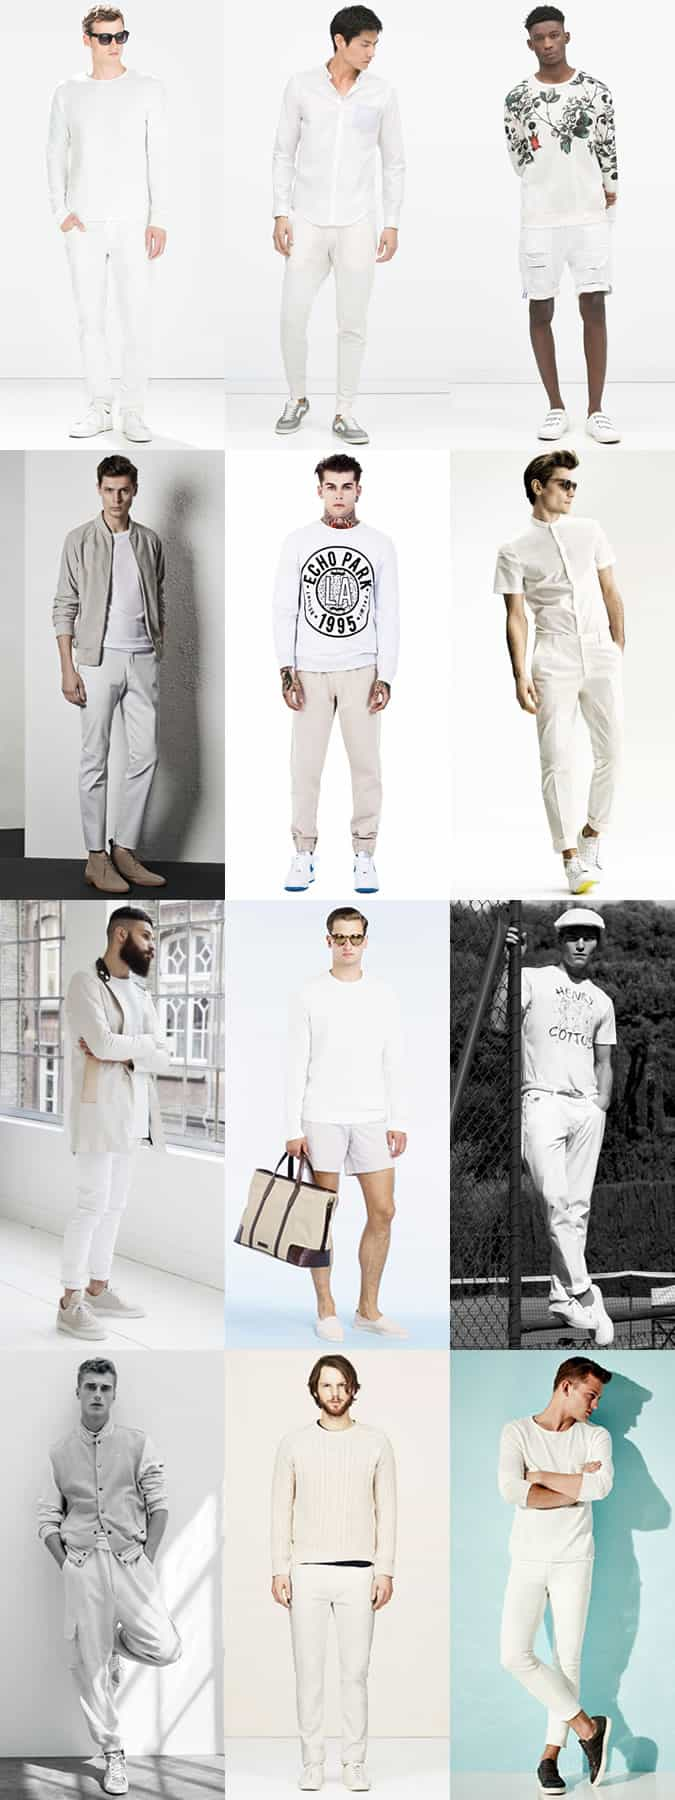 Men's White-On-White Sports Luxe and Casual Outfit Inspiration Lookbook